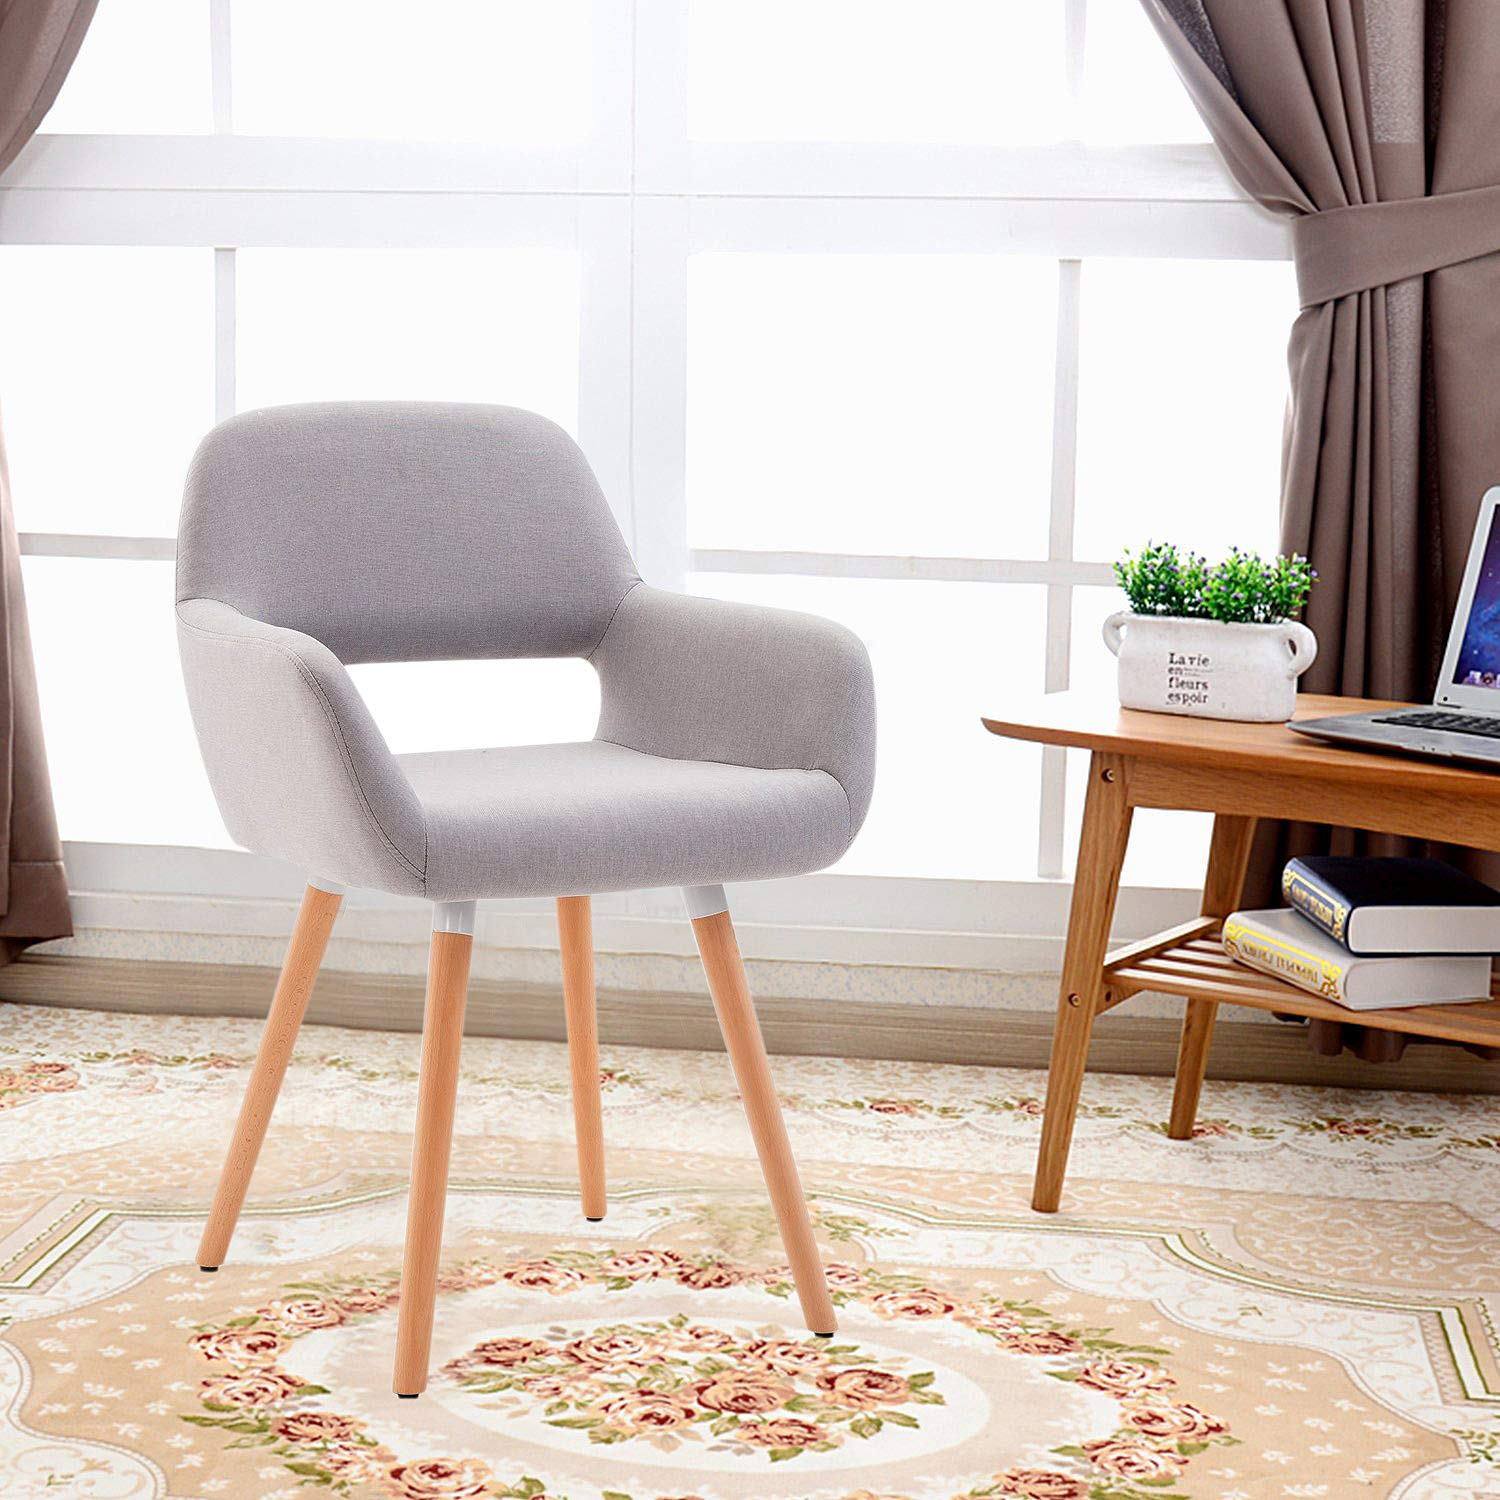 HEYNEMO Living Room Chair, Mid Century Modern Style Chair for Bedroom, Bedroom Chair with Sturdy Bentwood Legs, Grey by HEYNEMO